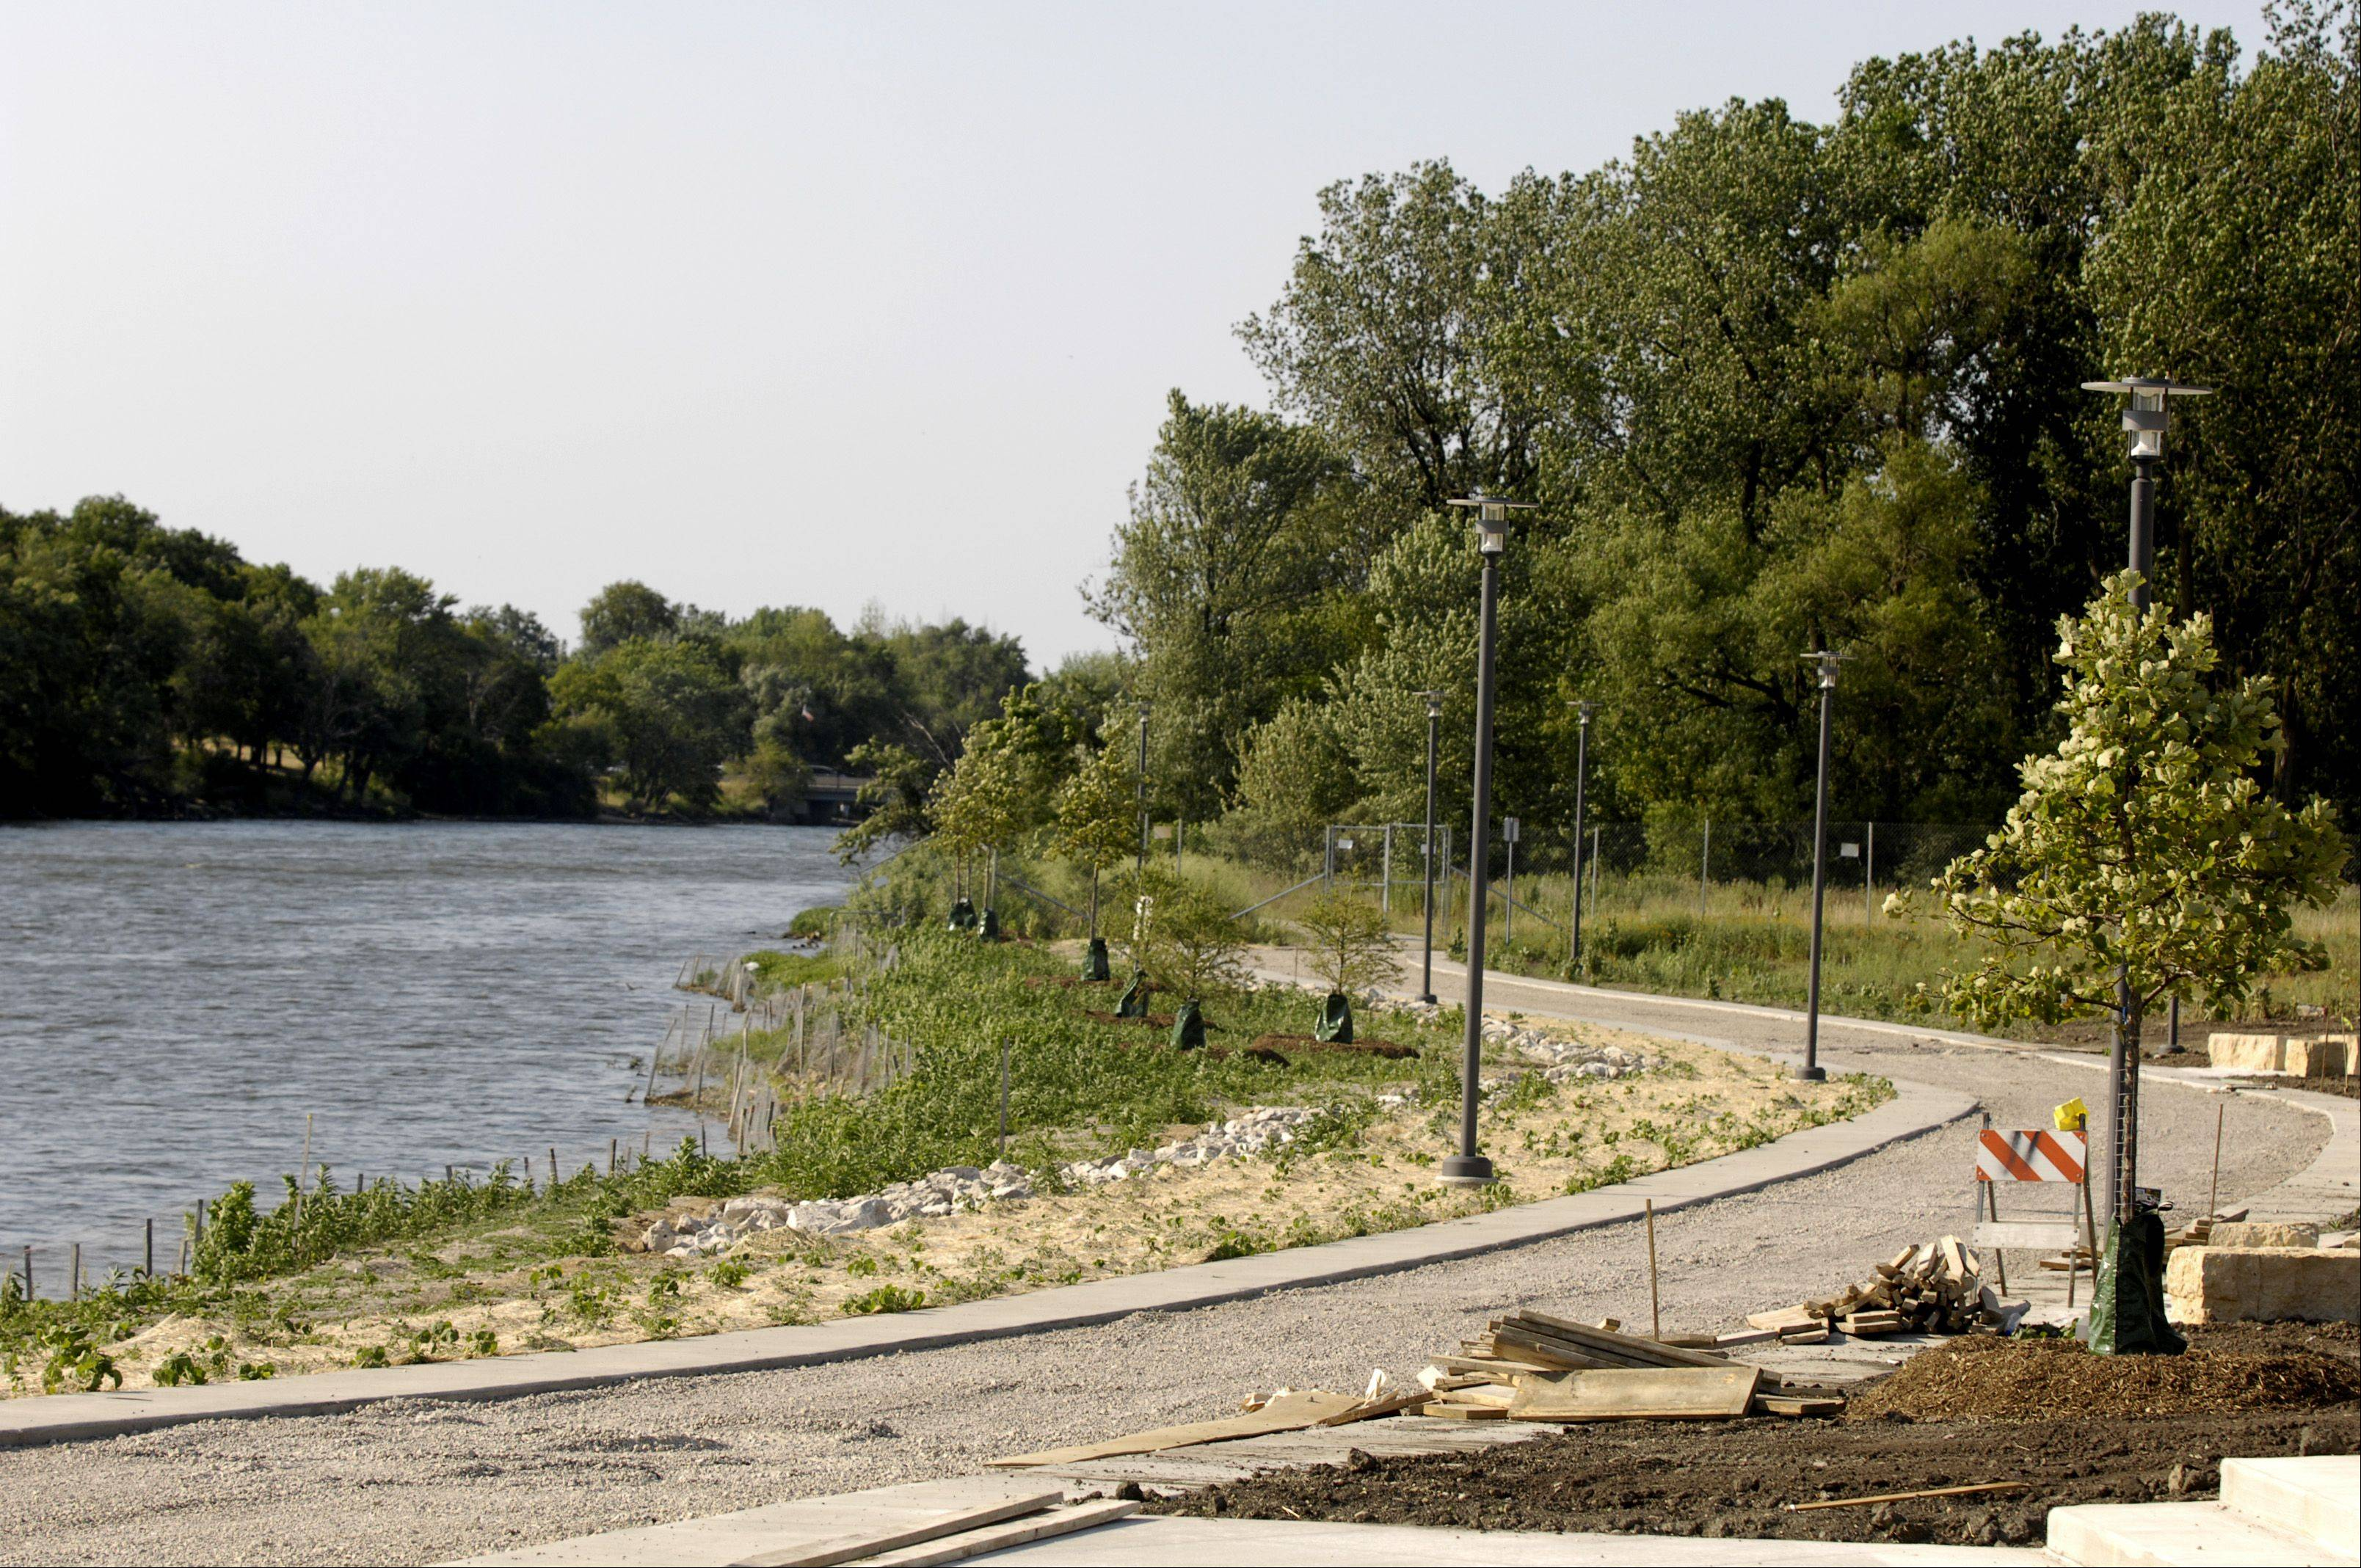 RiverEdge Park in Aurora will be managed by the Aurora Civic Center Authority, the same organization that manages the Paramount Theatre, when it opens next summer.